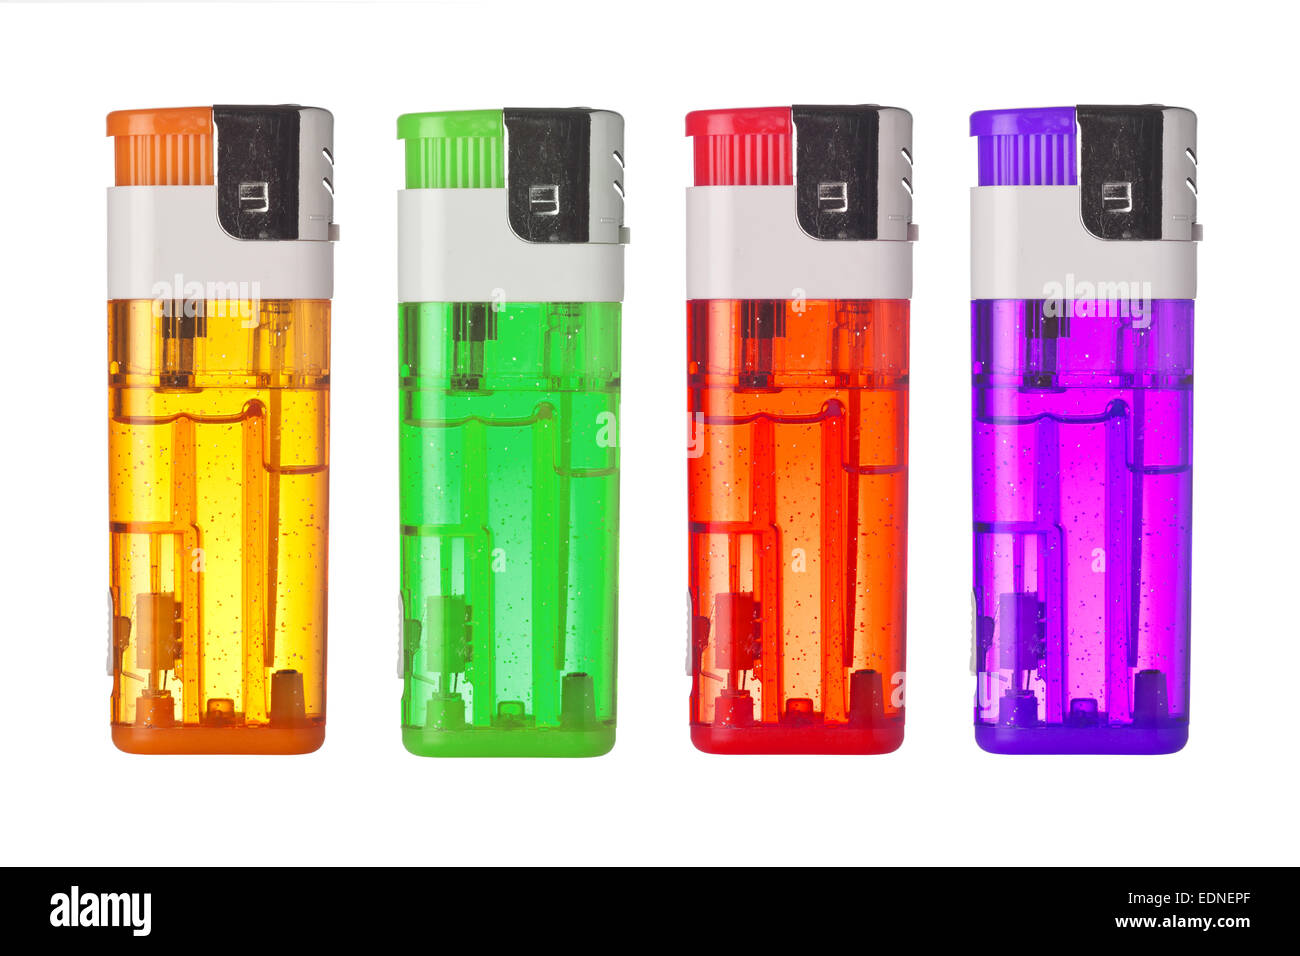 Four colorful lighters isolated on white background - Stock Image